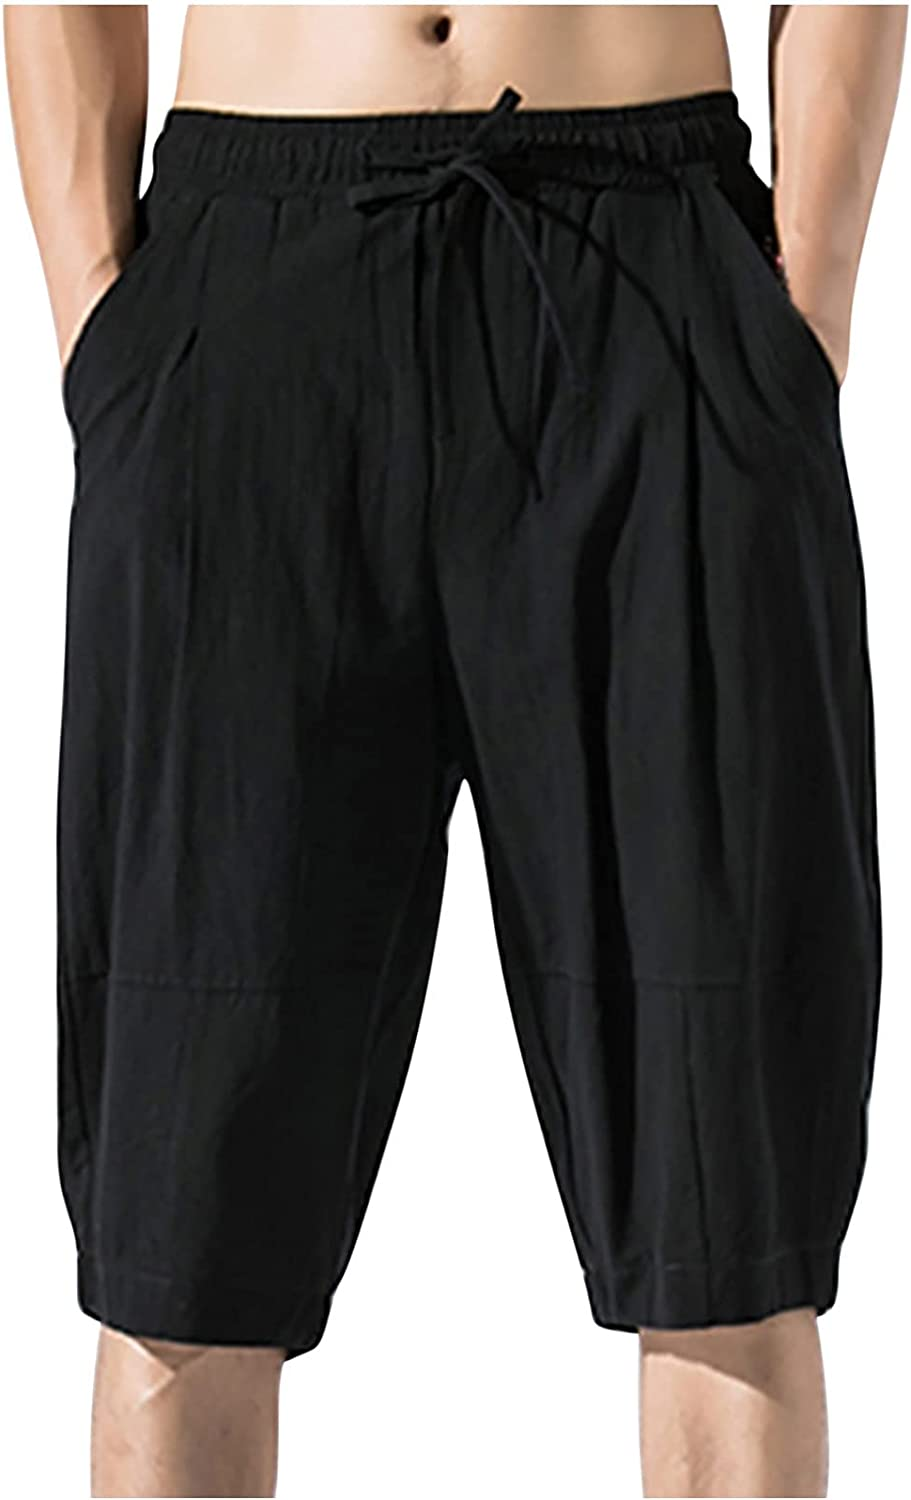 5'' Men's Linen Max 58% OFF Cotton Today's only Casual Classic Jogger PantsCasual Shorts